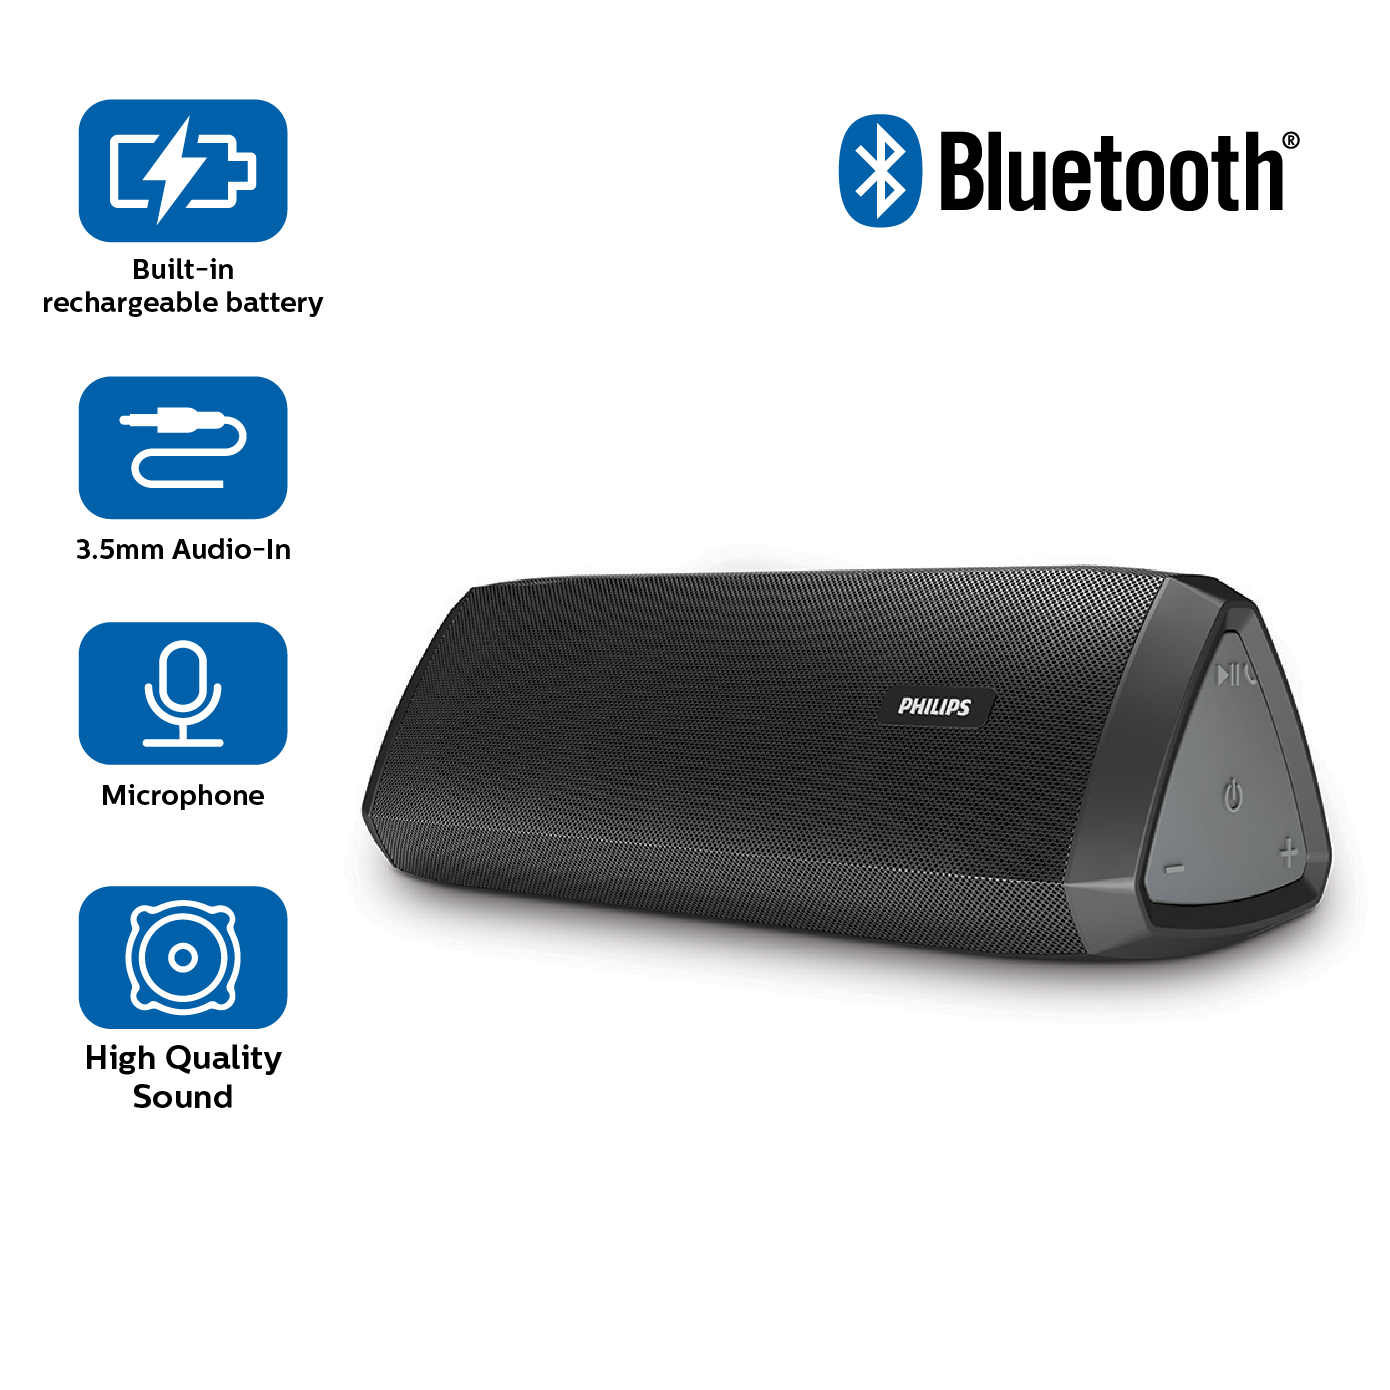 Philips BT120 Bluetooth Speakers (Black) Price: Buy Philips BT120 Bluetooth Speakers (Black